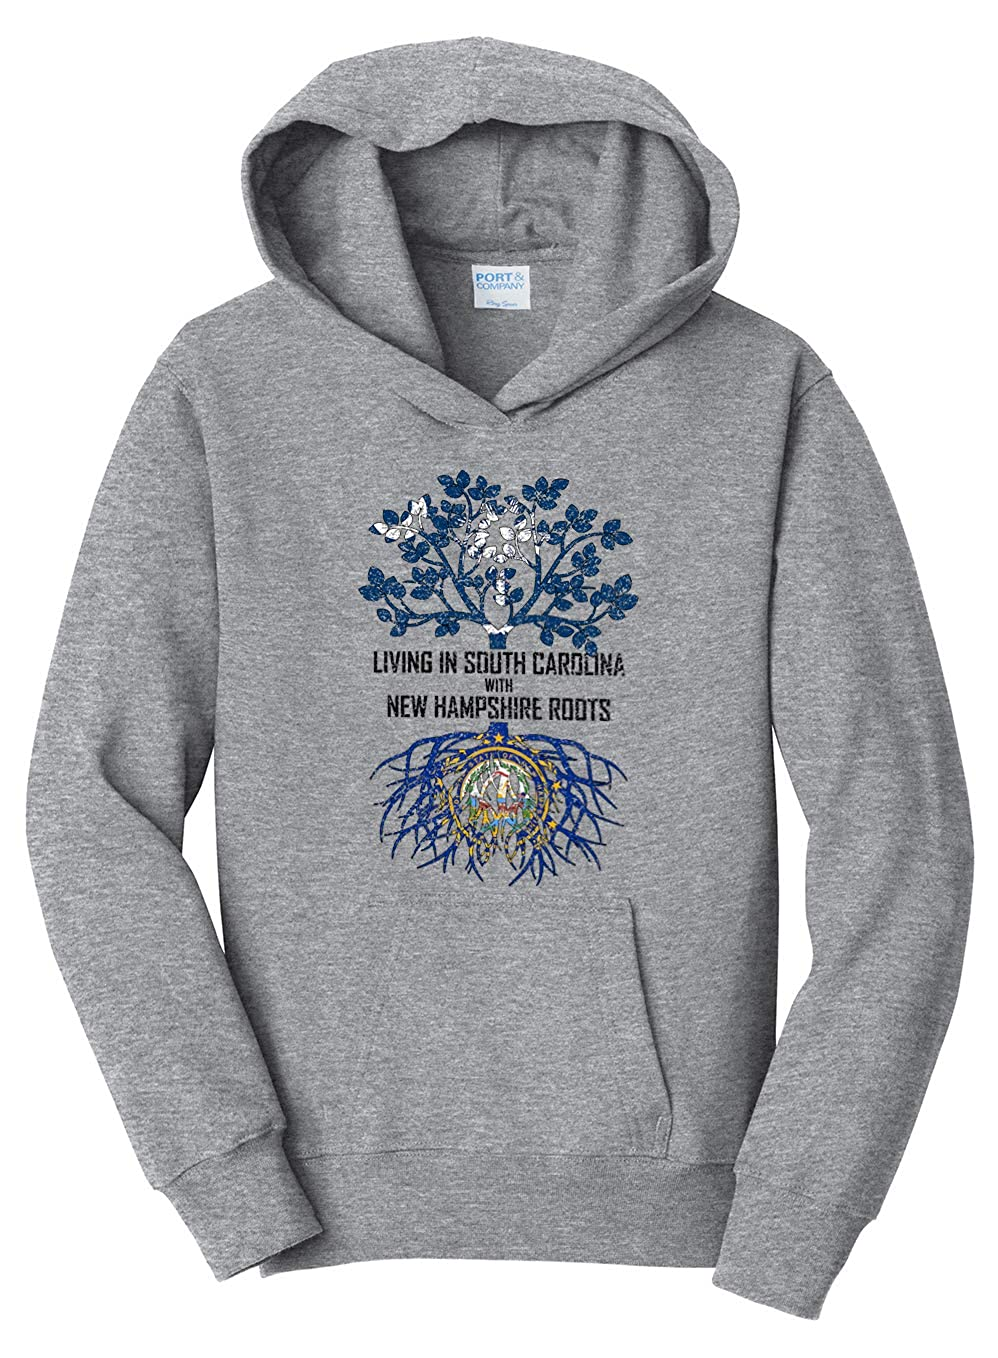 Tenacitee Girls Living in South Carolina with New Hampshire Roots Hooded Sweatshirt